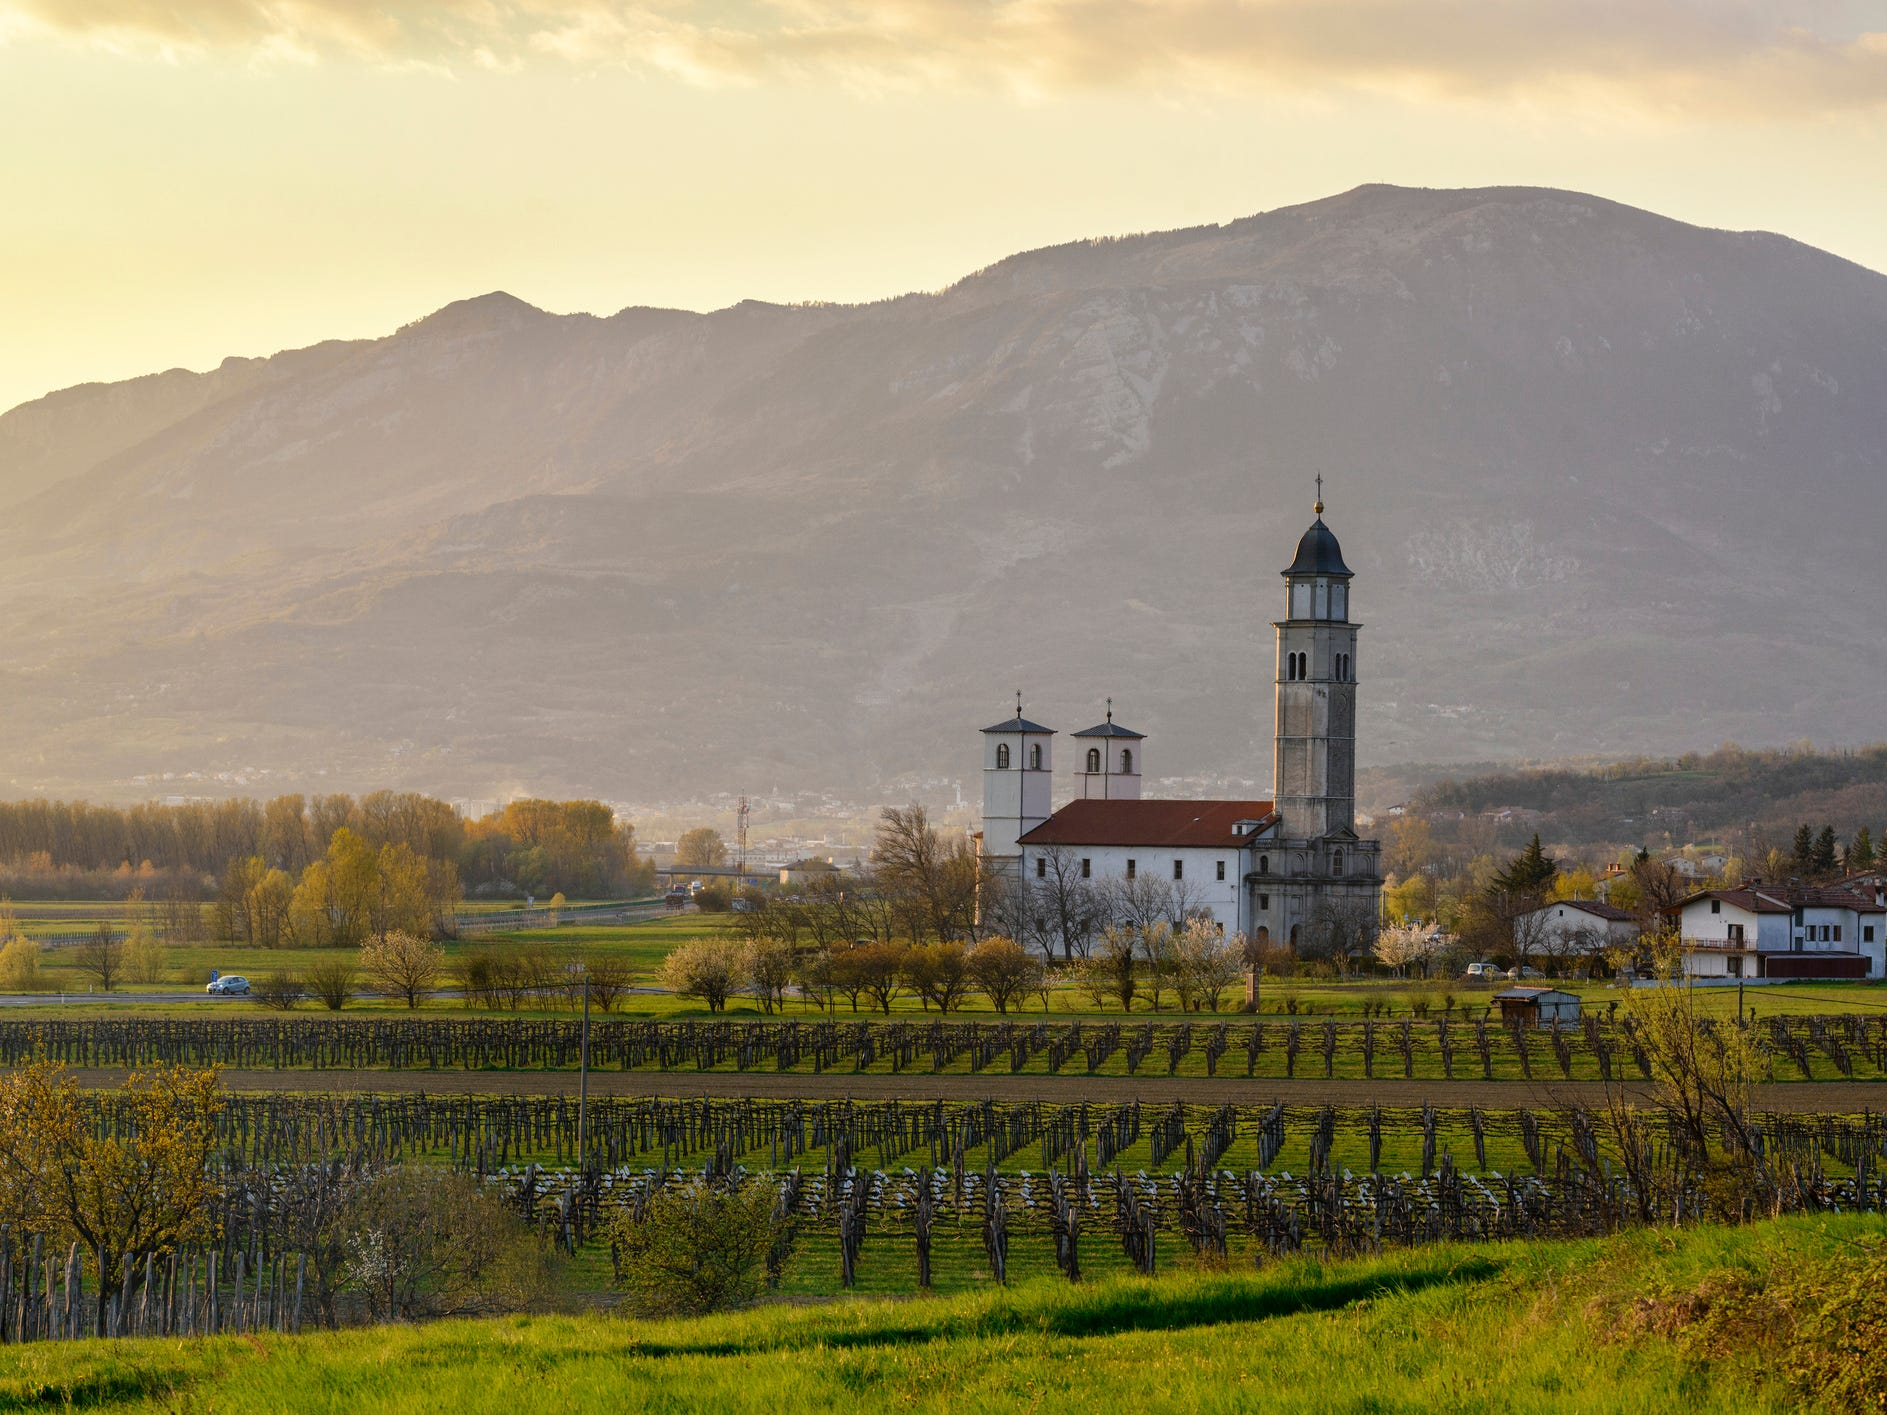 Vipava Valley, Slovenia: Just two hours from Venice, the Vipava Valley is a haven for adventurous travelers looking for room to explore. Rent a car and drive through this countryside to find plenty of things to do, from easy-going bike rides through vineyards to stand-up paddleboarding on the Vipava River. And of course, frequent stops at some of the valley's boutique winemakers are a must. Pepper your wine tasting with gastronomical stops to try locally produced staples like honey, cherries and olive oil. For a bit of history, you can stop by the Kostanjevica Monastery and visit the Bourbon crypt, where members of the noble French family were buried following their exile after the French Revolution.